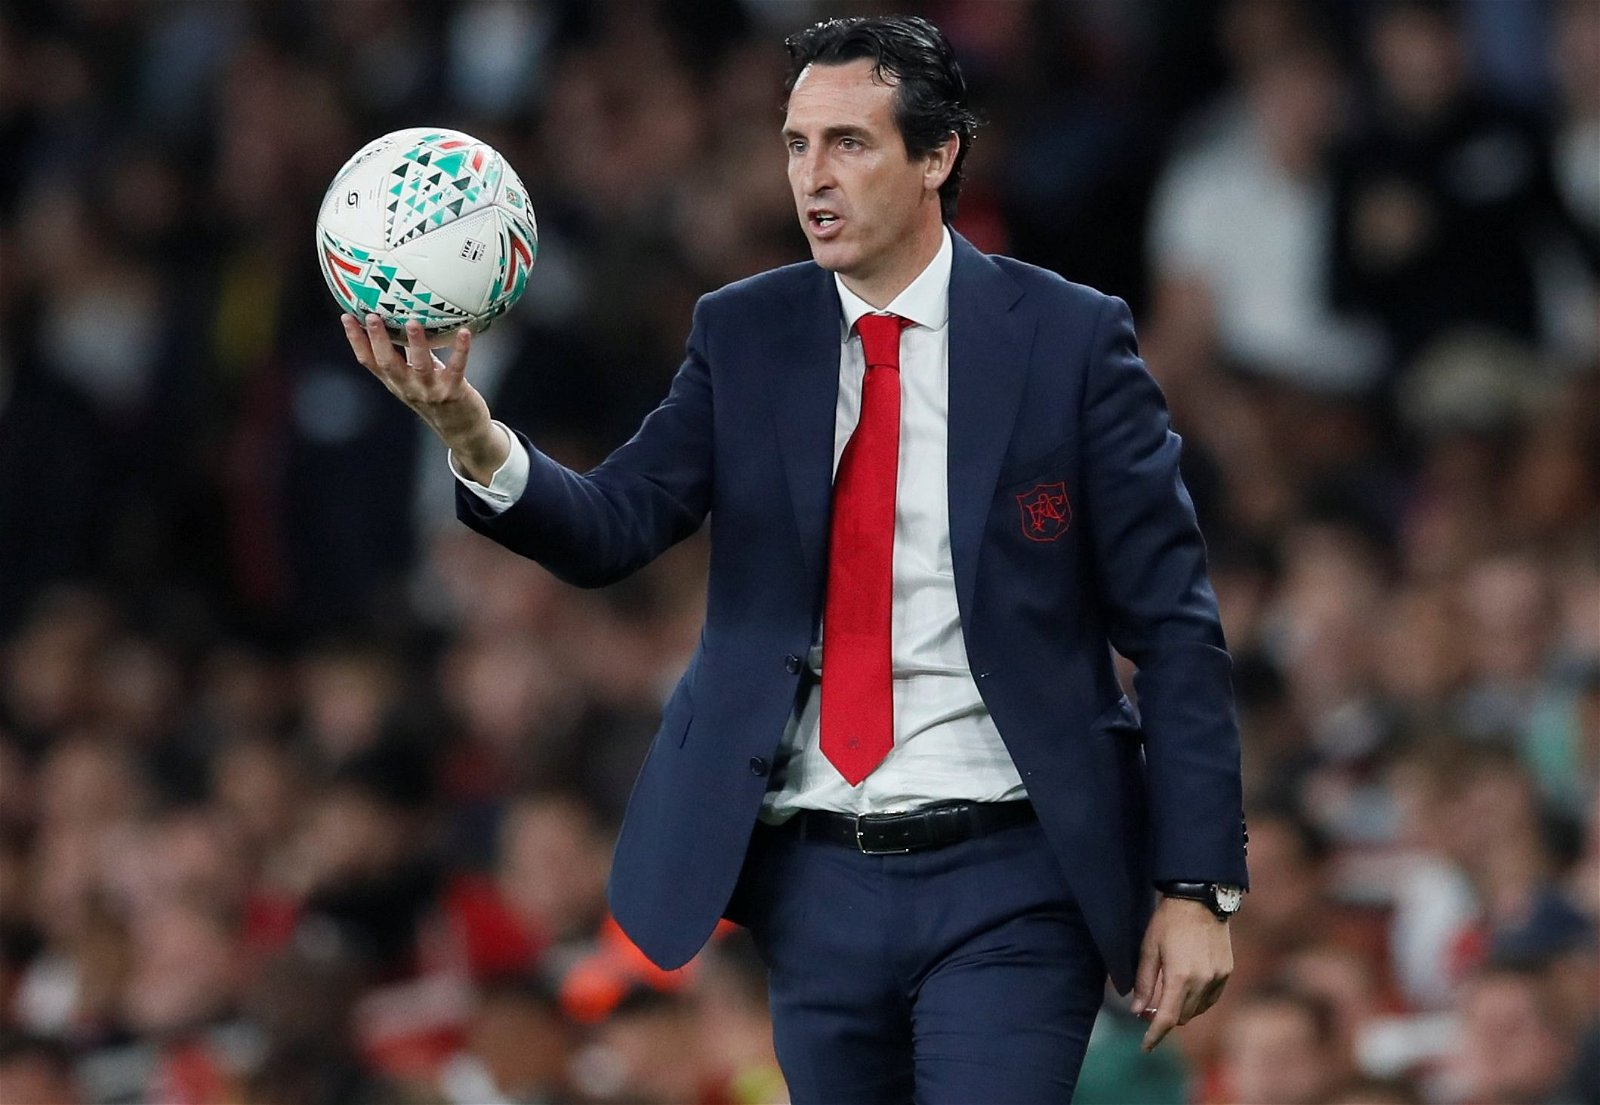 Arsenal manager Unai Emery holds the ball during Carabao Cup win over Brentford